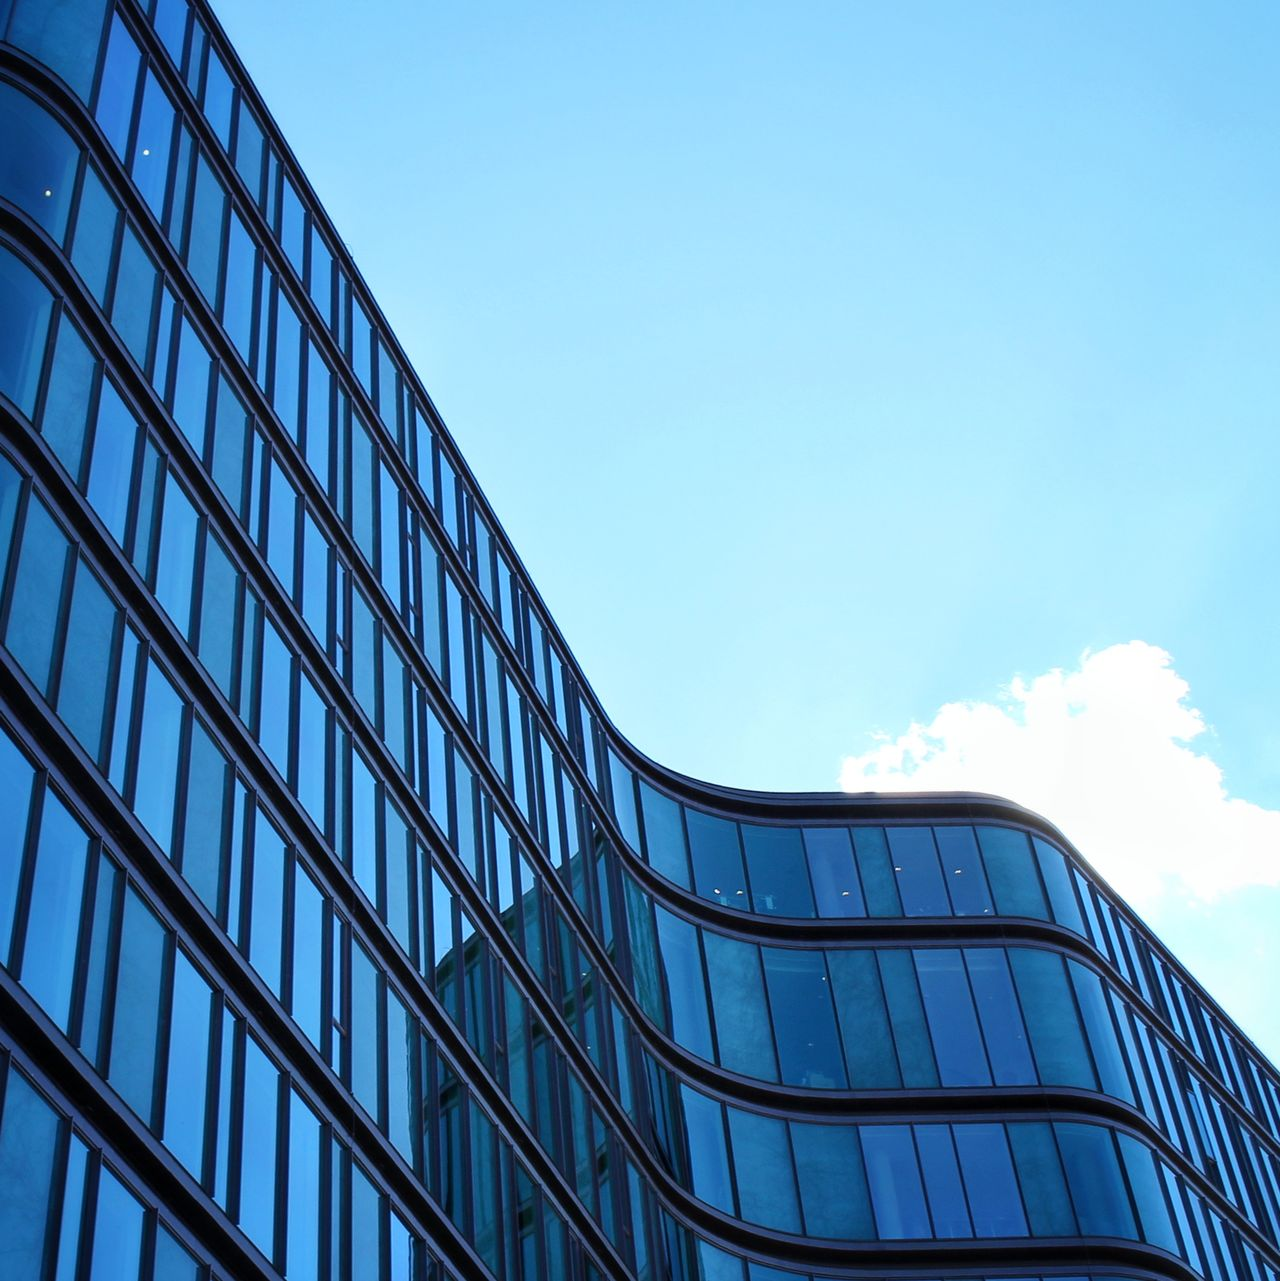 Beautiful stock photos of glas, copy space, building exterior, built structure, clear sky